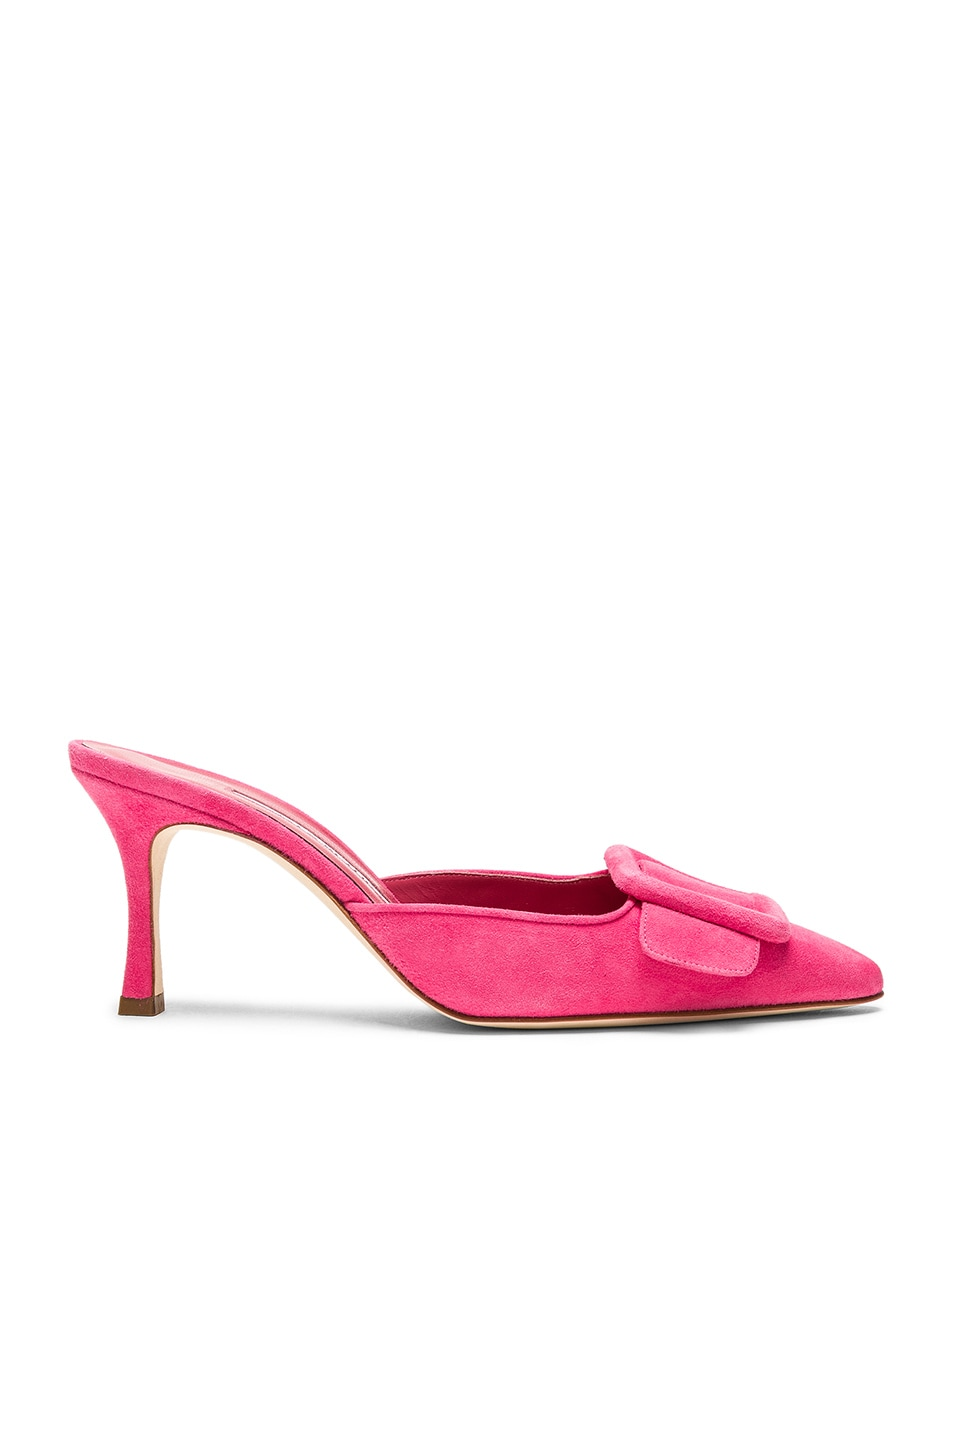 Image 1 of Manolo Blahnik Suede Maysale 70 Mule in Bright Pink